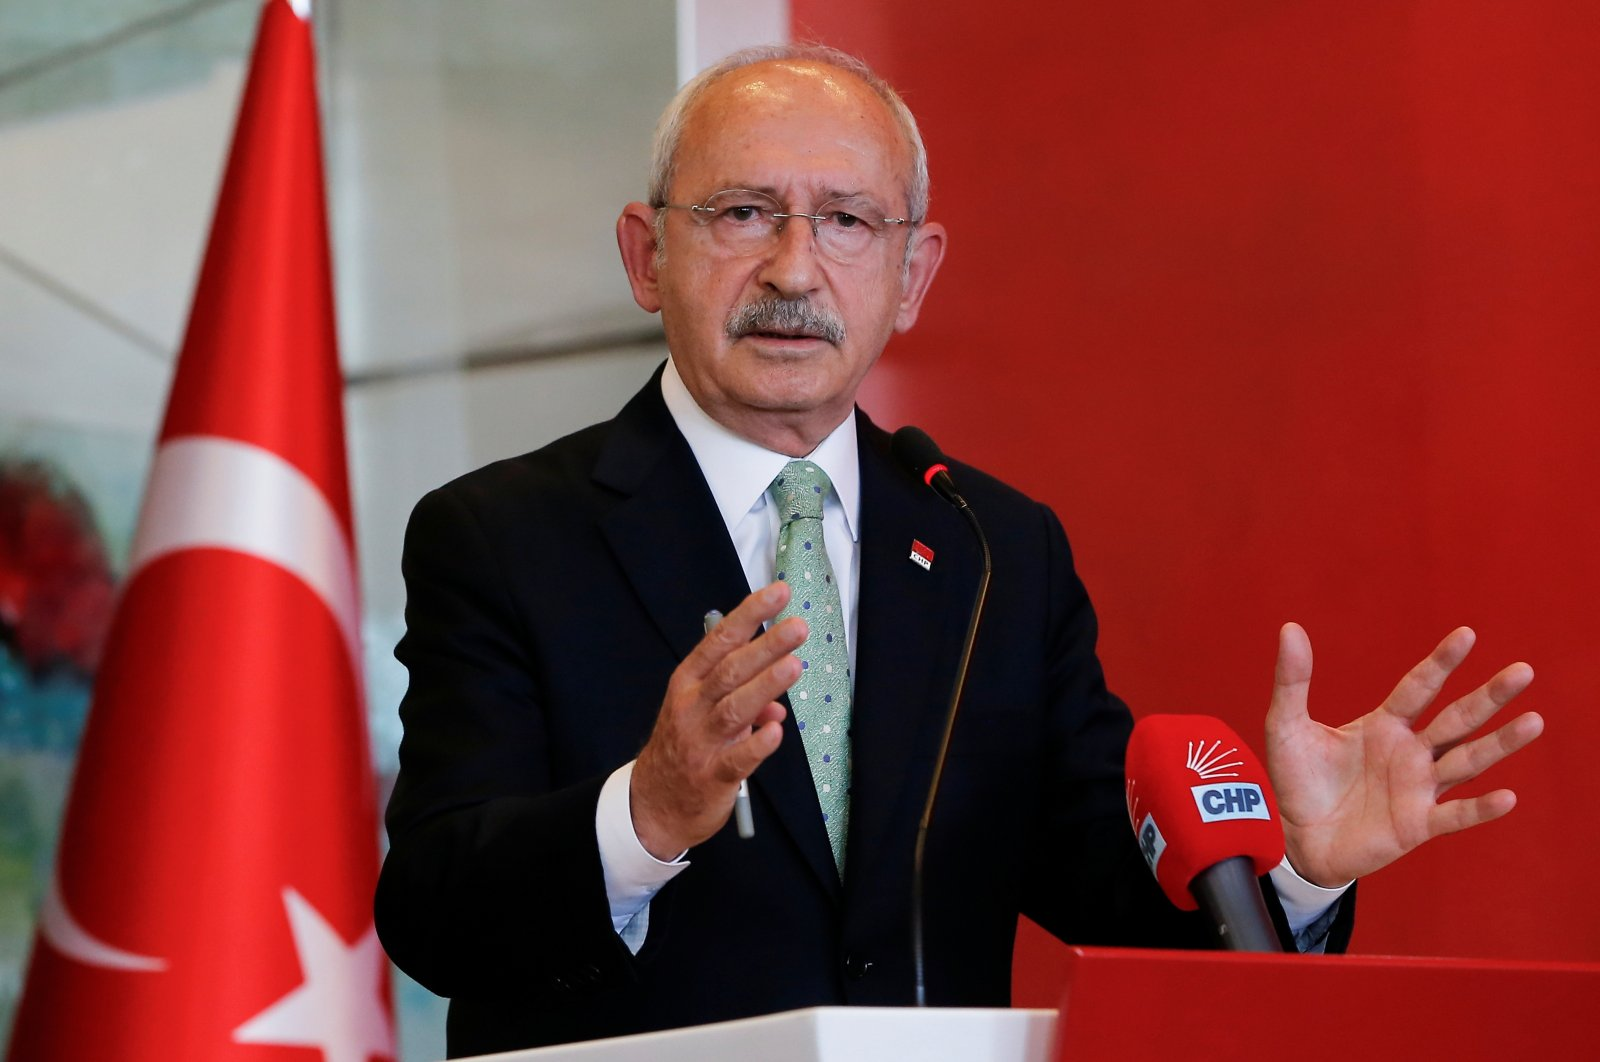 Kemal Kılıçdaroğlu, the leader of the main opposition Republican People's Party (CHP), speaks during a news conference in Ankara, Turkey, Oct. 11, 2021. (Reuters Photo)